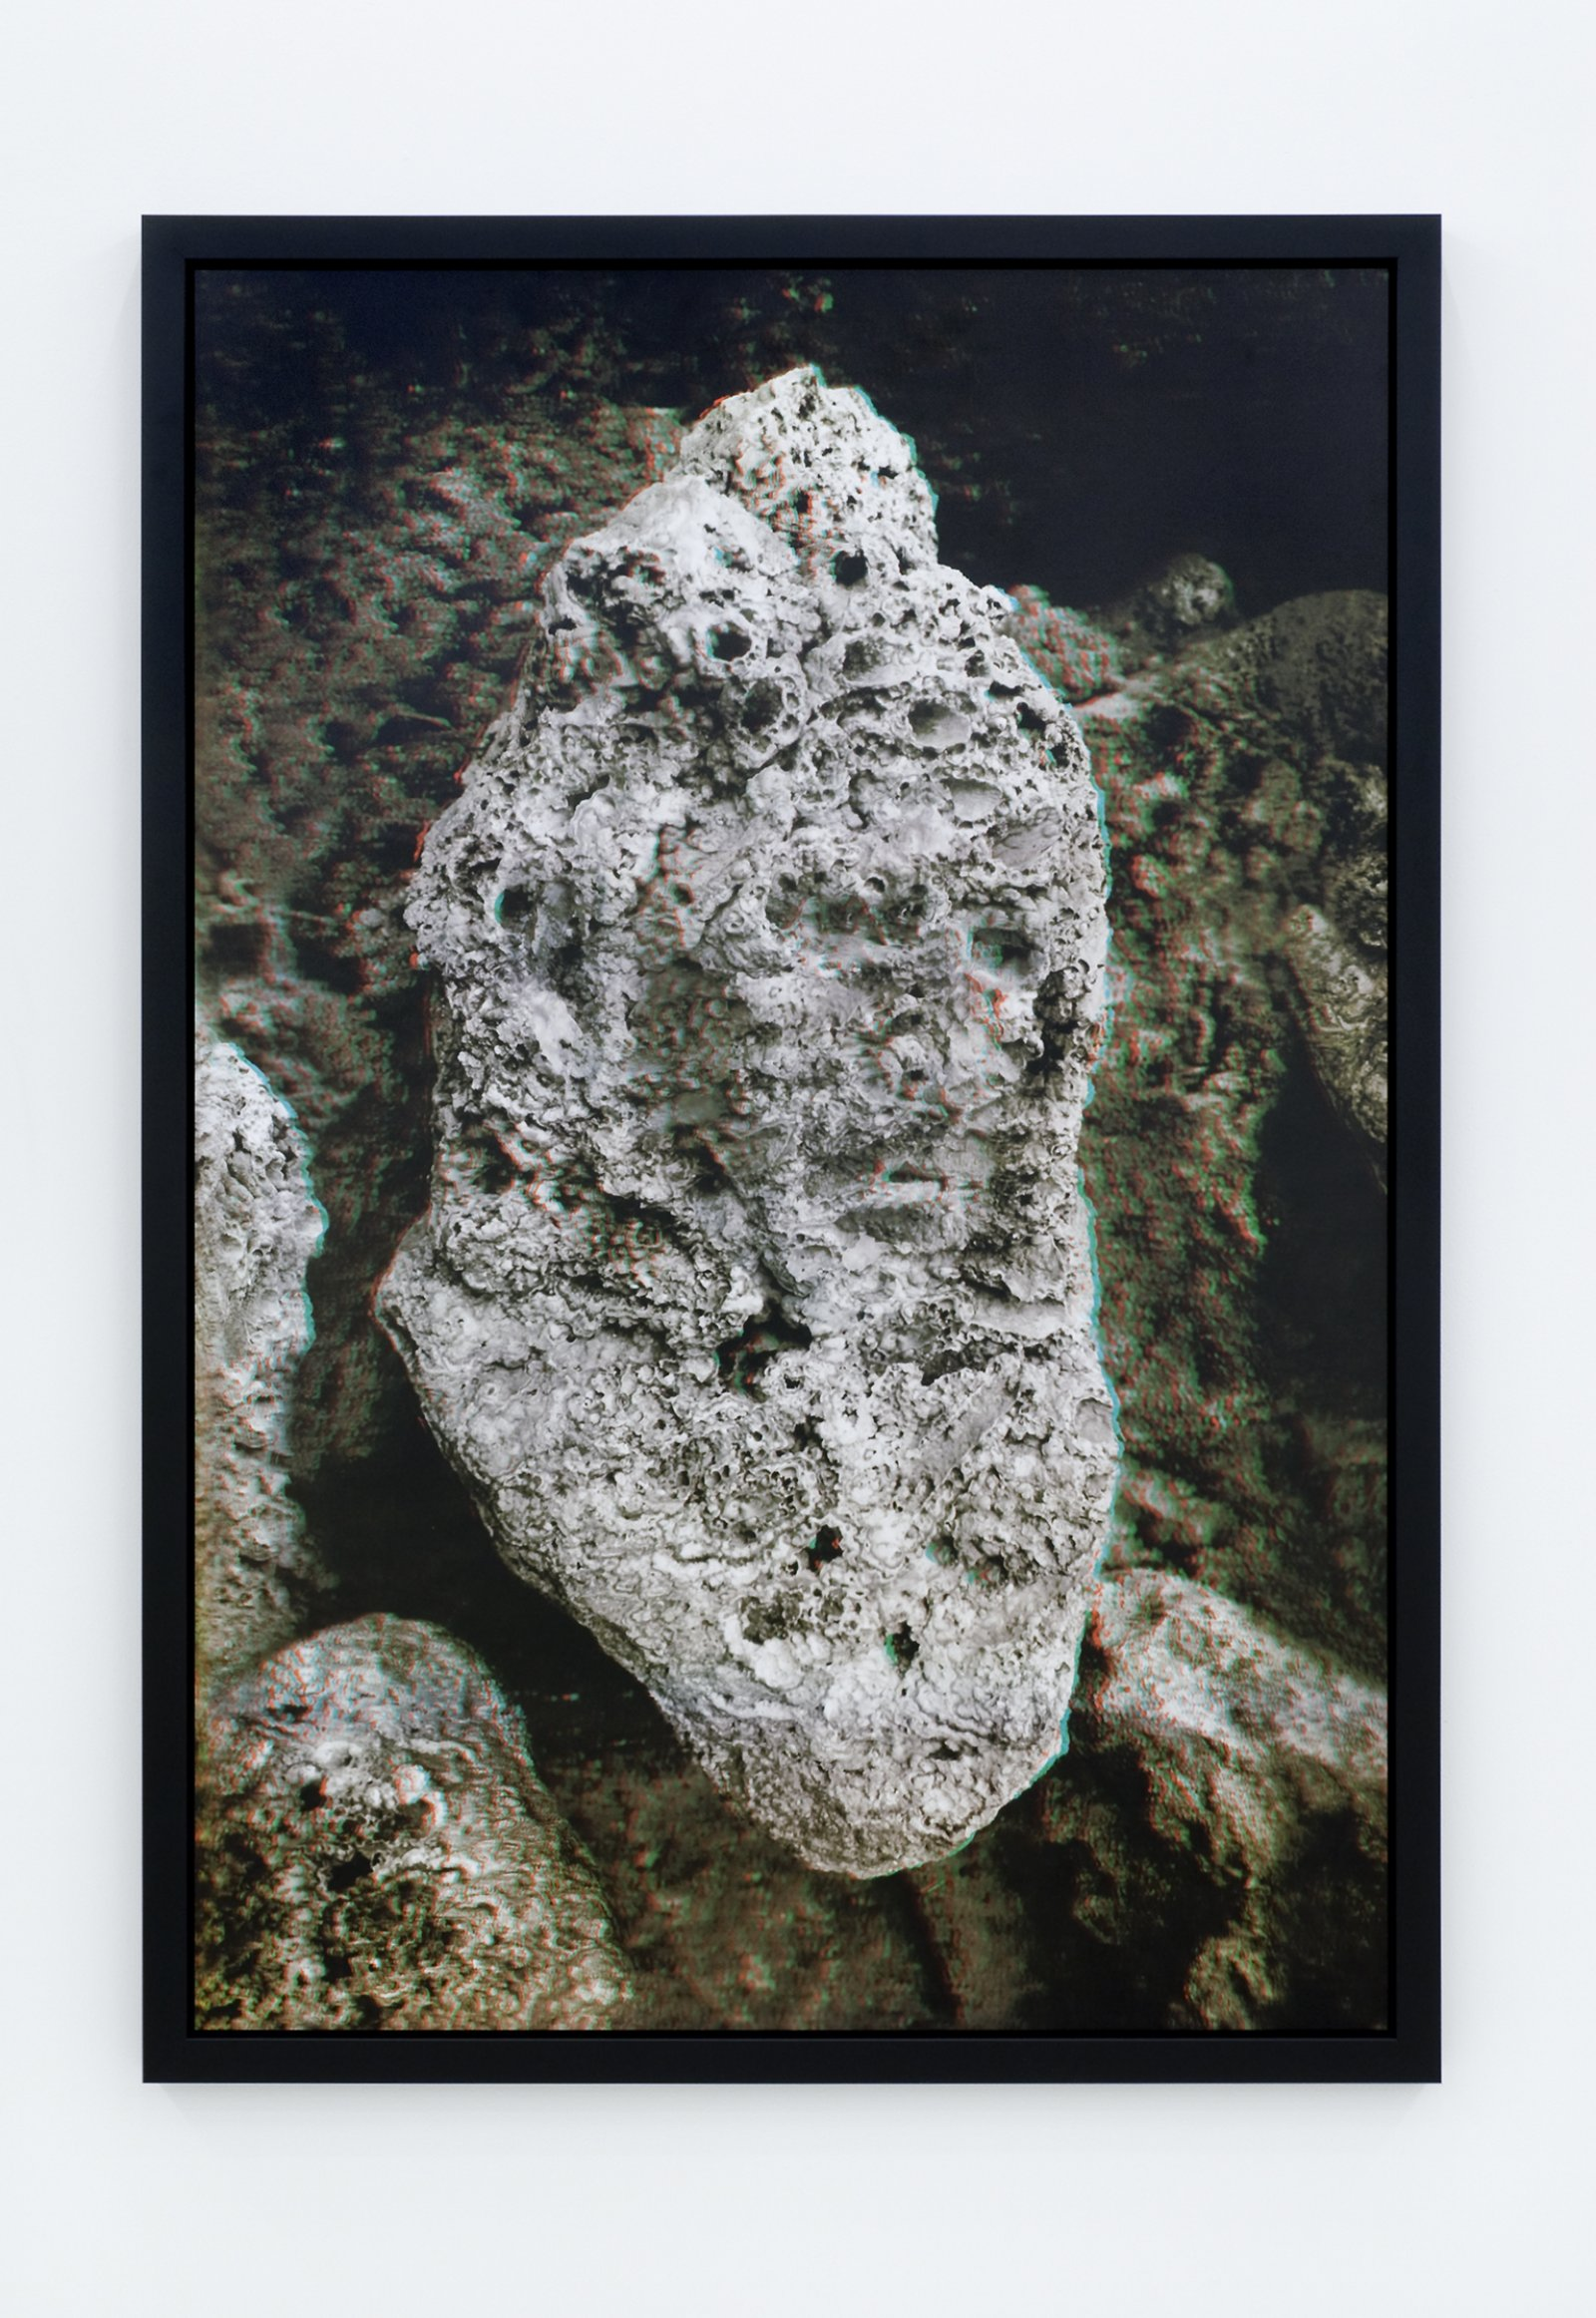 Geoffrey Farmer,Anaglyph poster, I saw Paul Virilio's face in a rock at the Source of Saint Leger, 2009, anaglyph poster, 72 x 50 (184 x 128 cm)